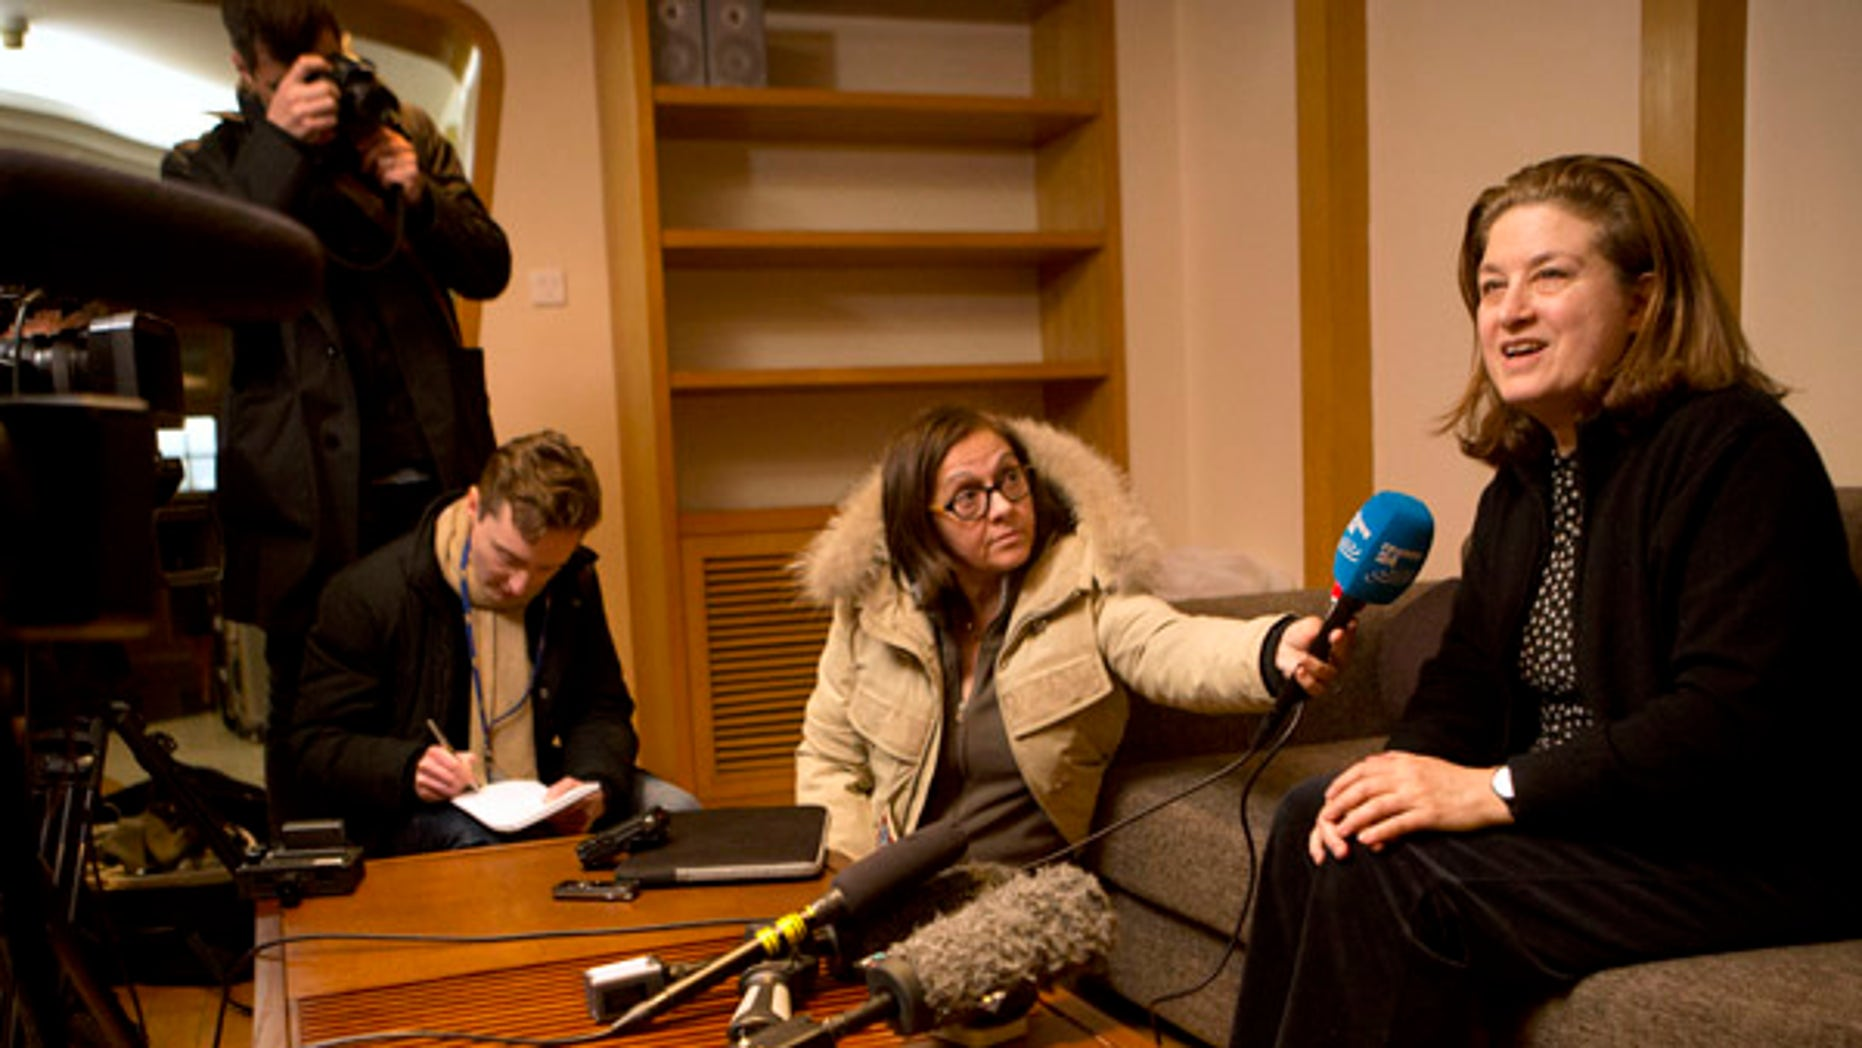 Dec. 31, 2015: French journalist Ursula Gauthier, right, a reporter in China for the French news magazine L'Obs, speaks to the media in her apartment before leaving for the airport in Beijing (AP)